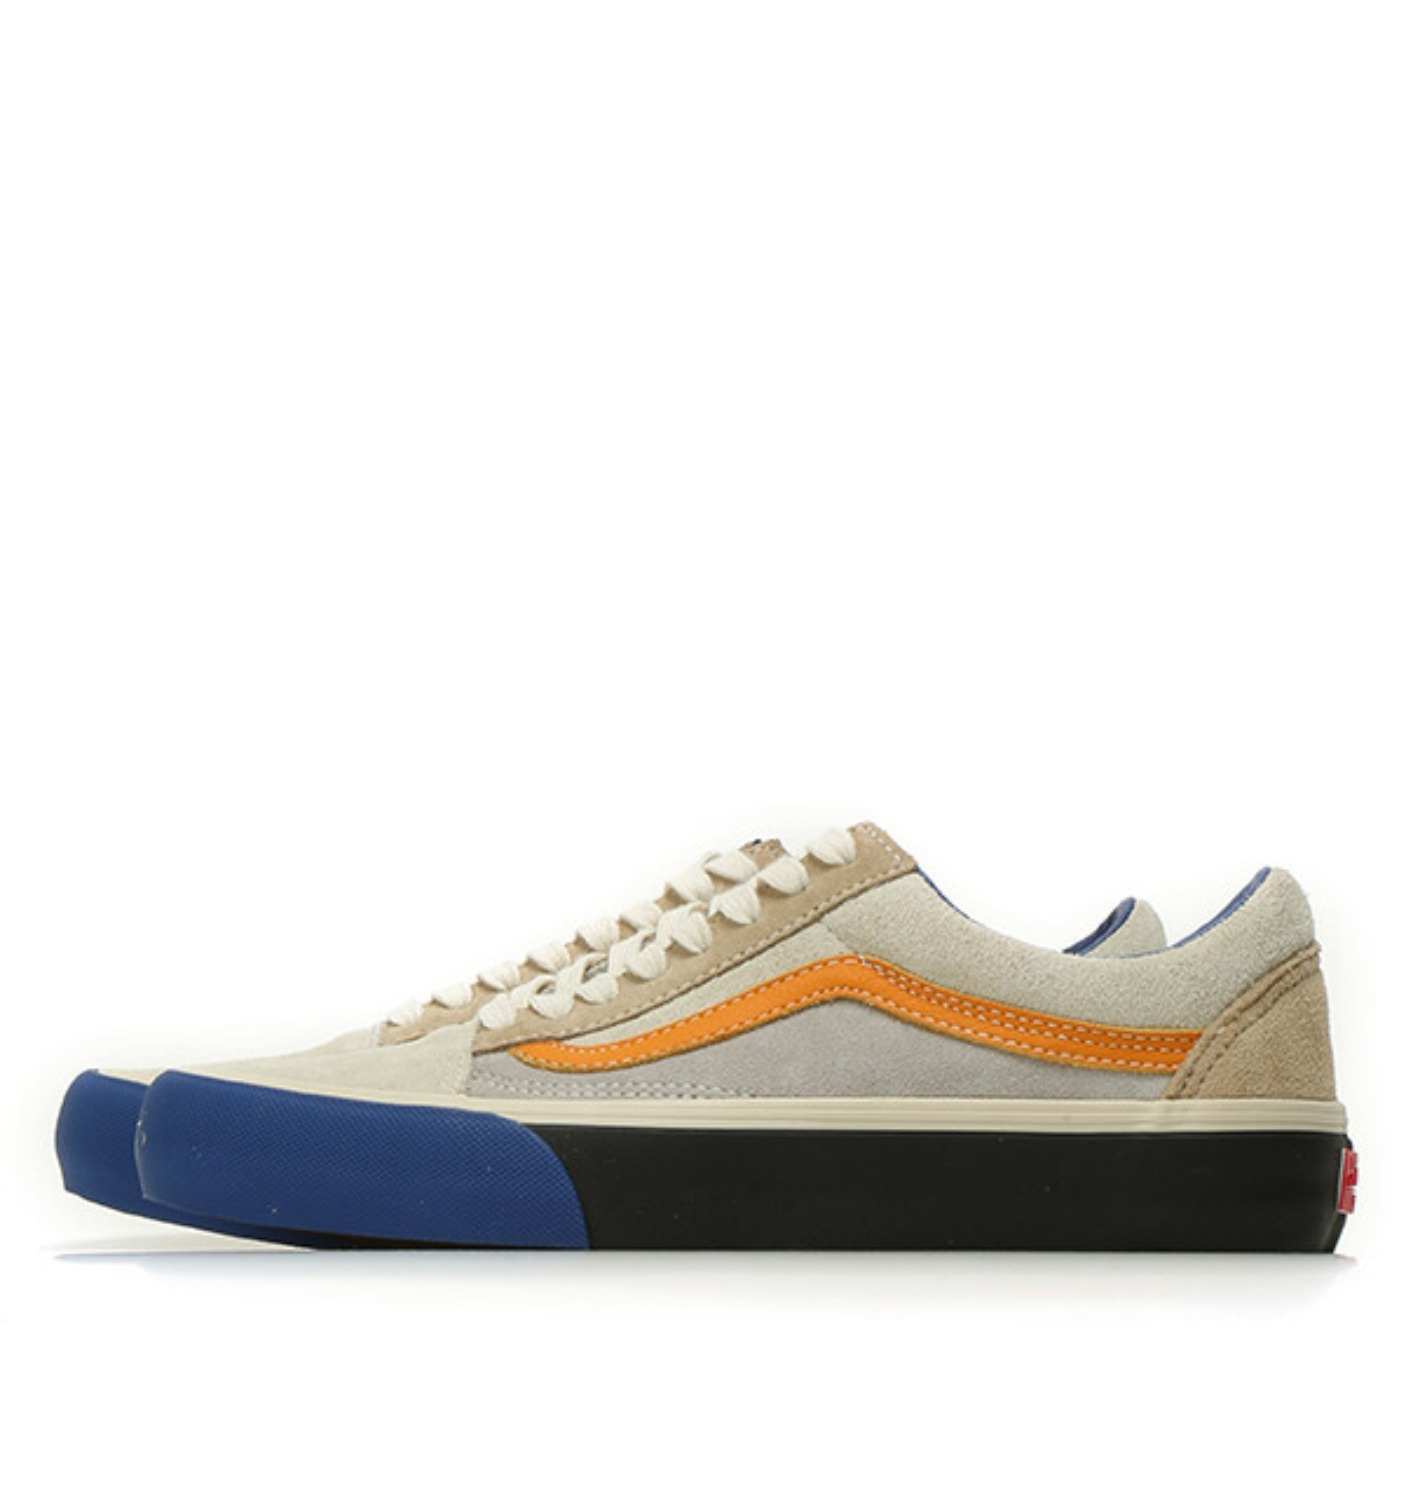 OLD SKOOL VLT LX(SUEDE/LEATHER)TRUE BLUE